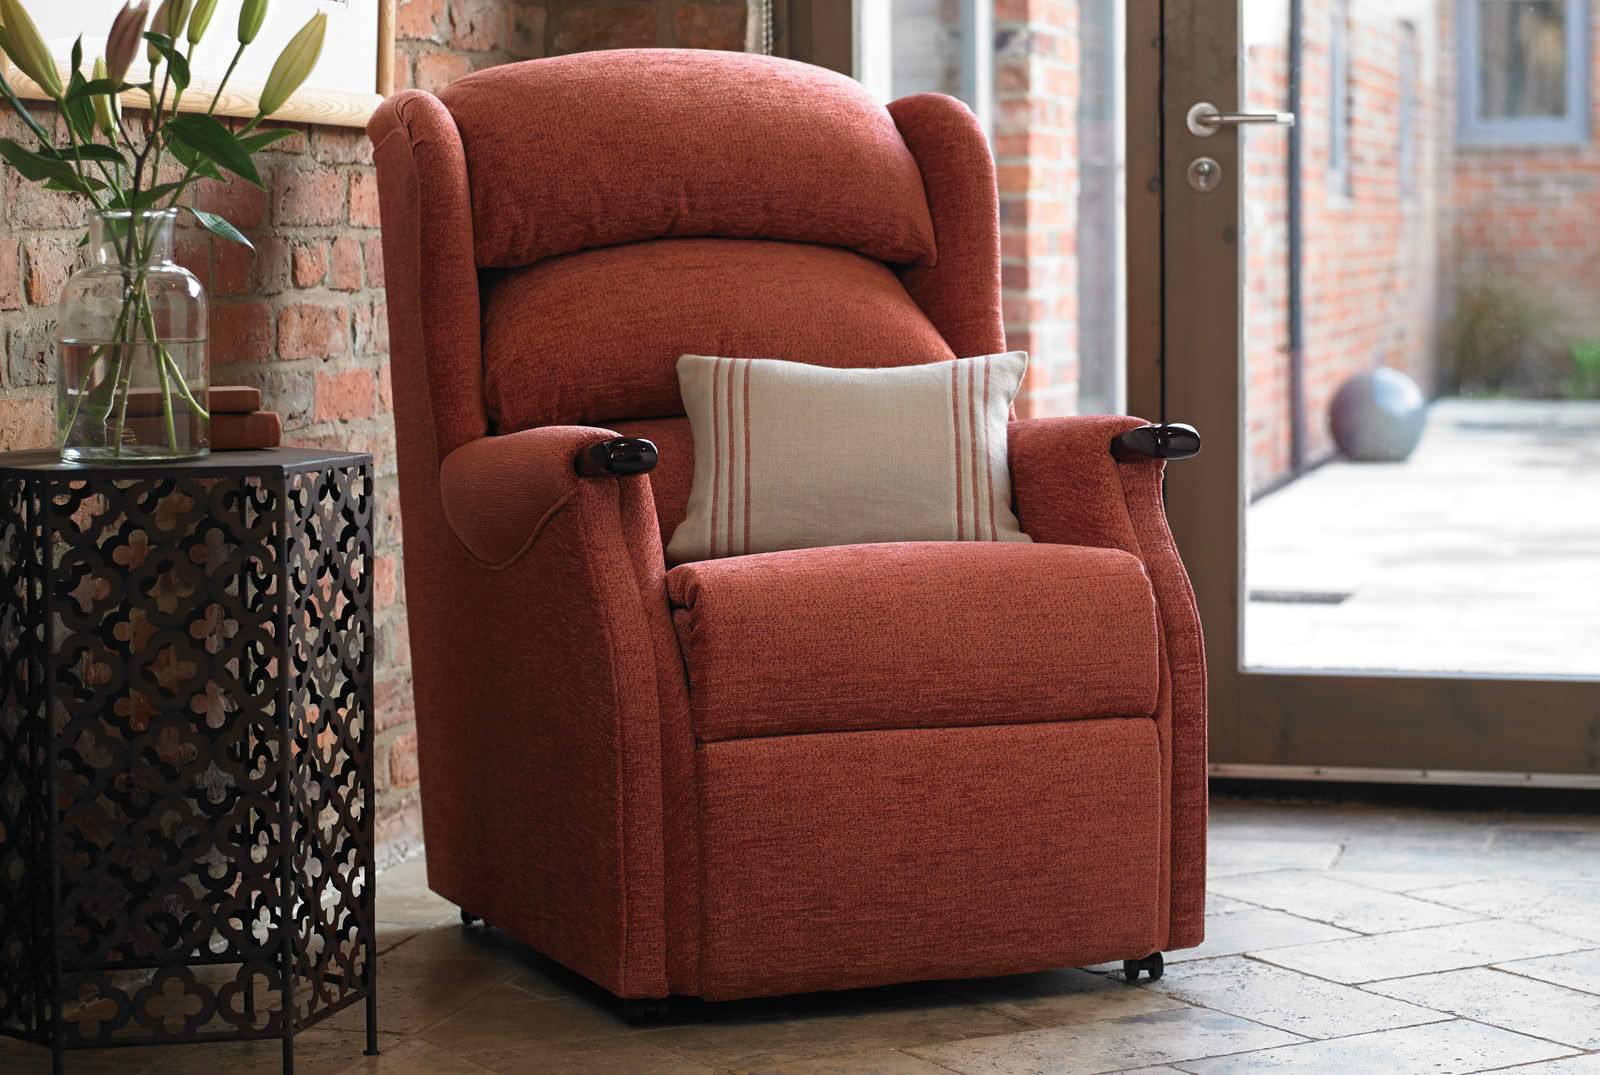 Linton Comfort Chair in Boucle Rose